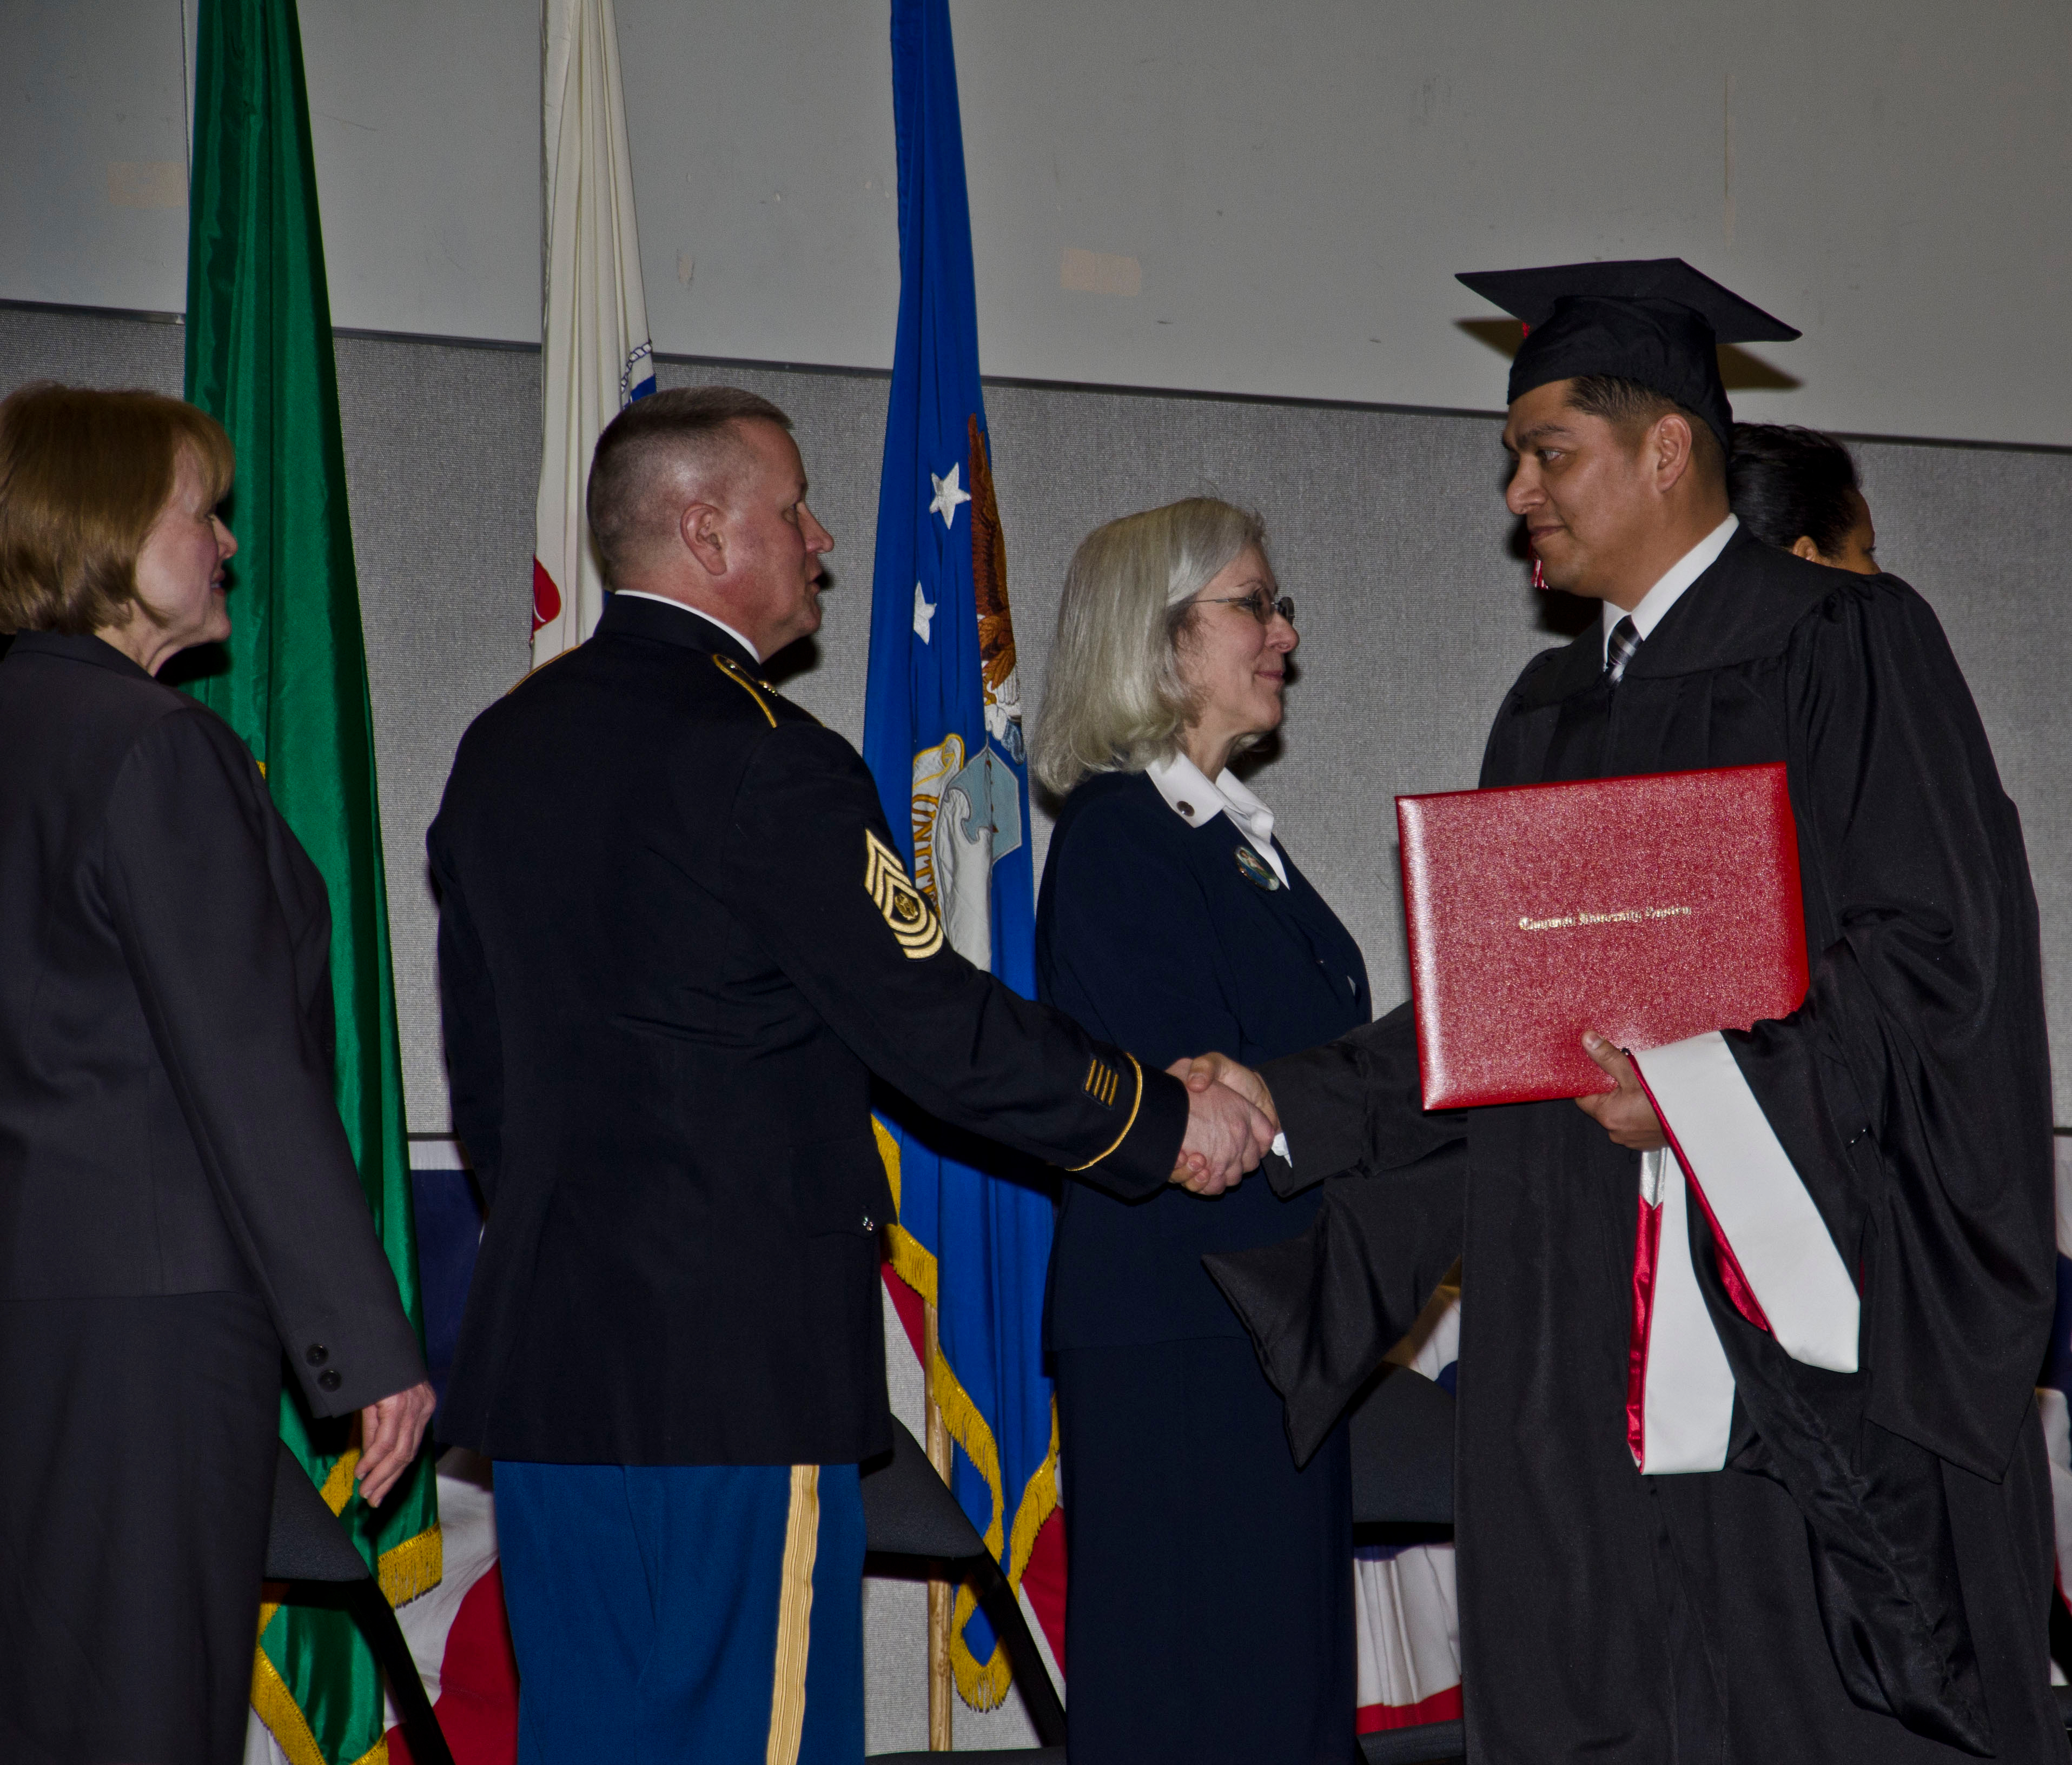 Master Sgt. Ramiro R Cantu is presented his master's degree during the first combined college graduation ceremony for Joint Base Lewis-McChord